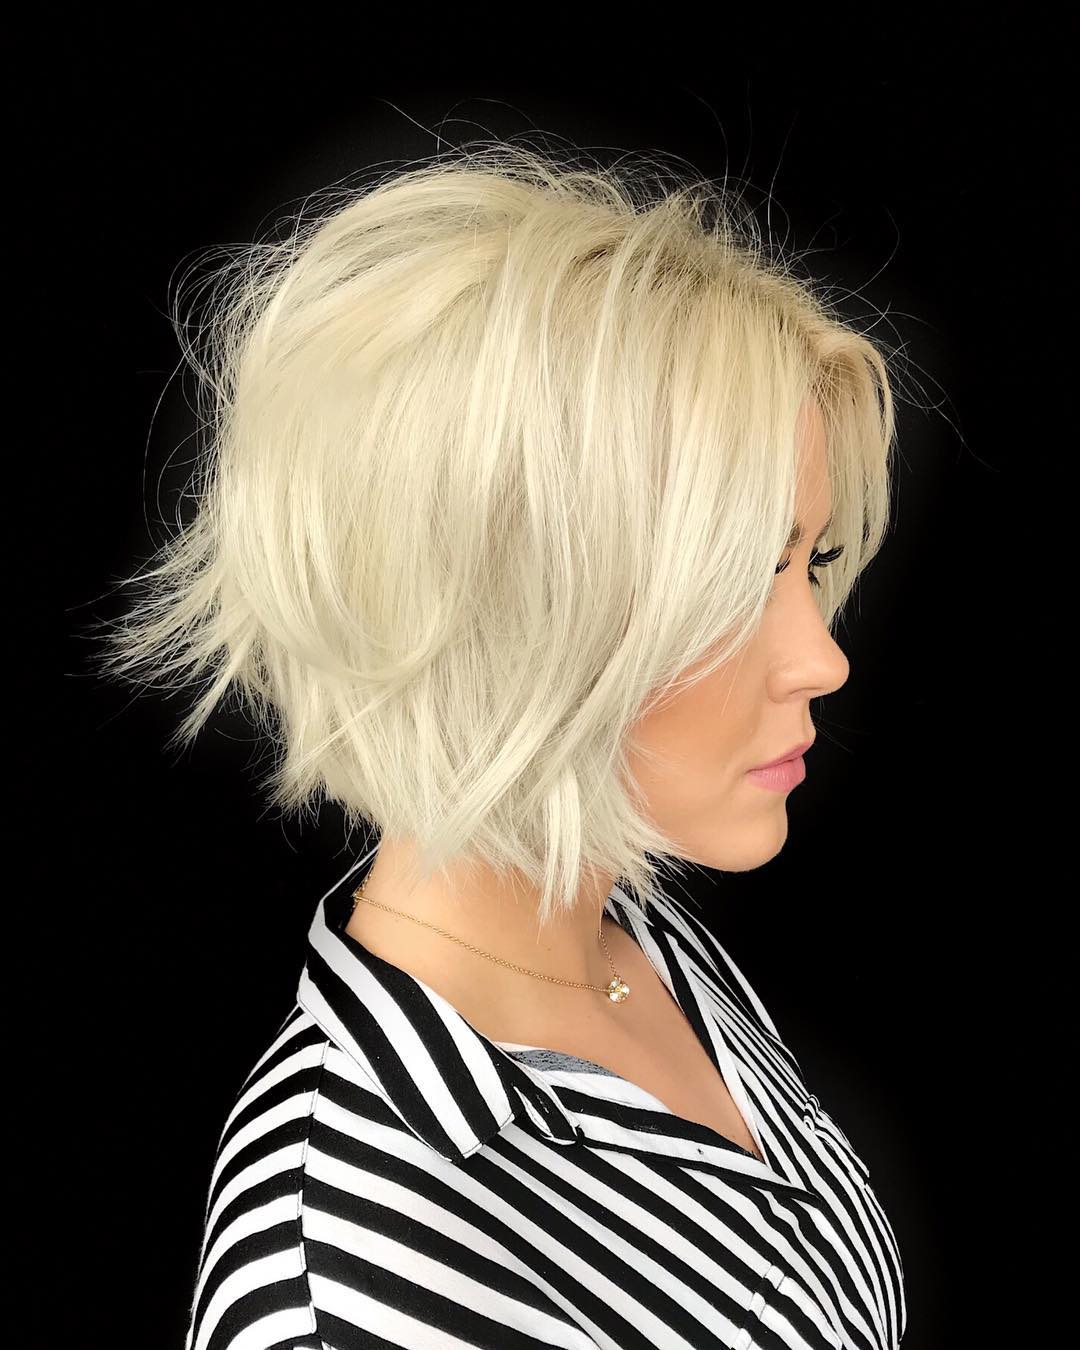 Top 22 Best Short Bob Hairstyles for Summer, Short Haircuts 22